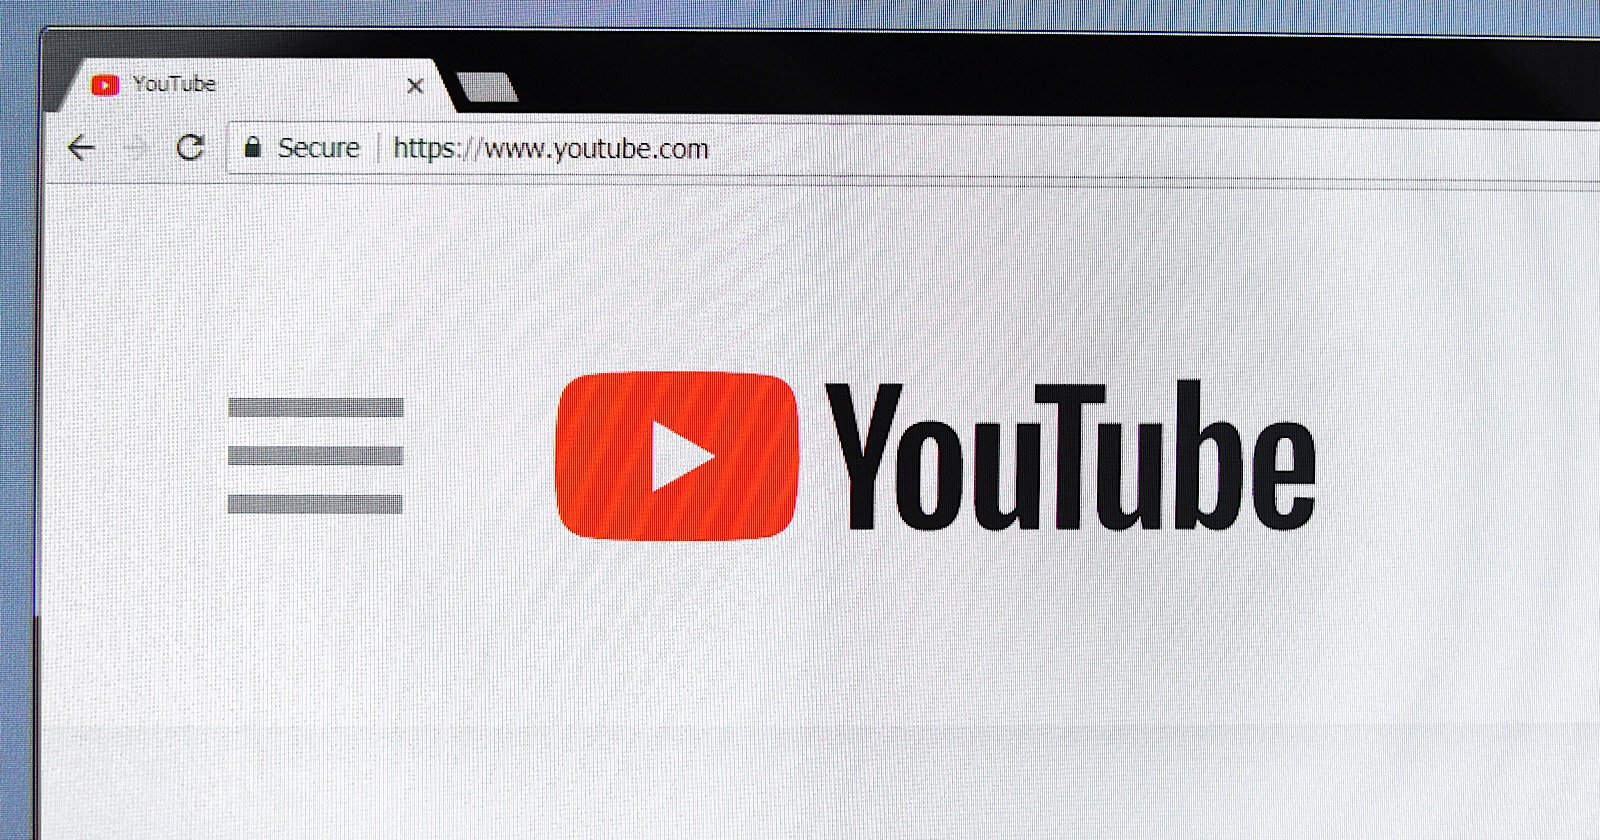 Google Implements Stricter Criteria For YouTube